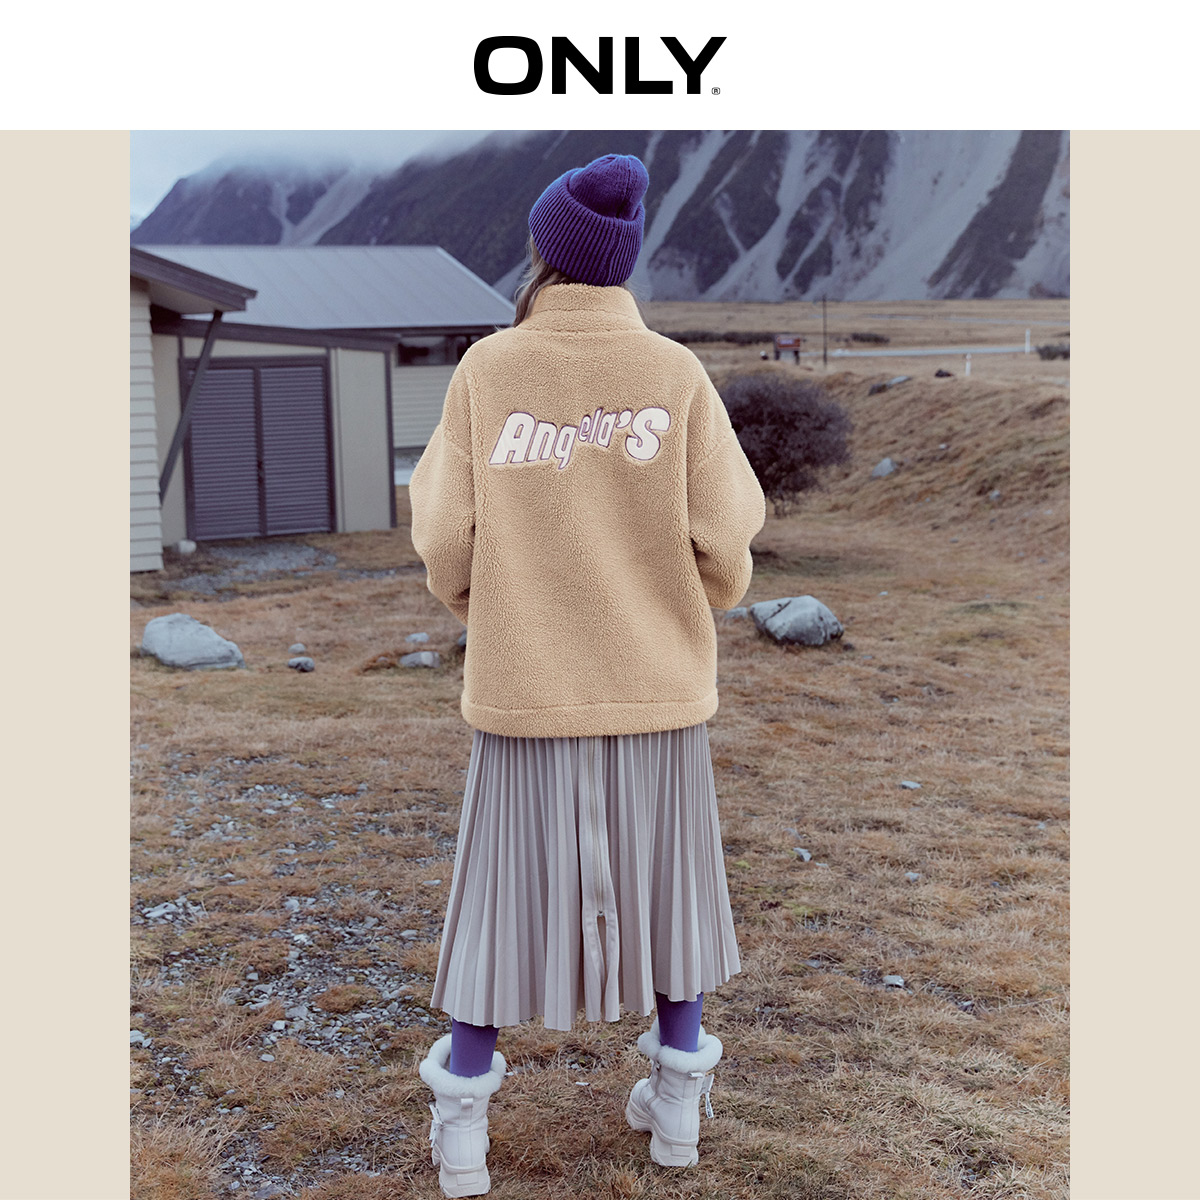 ONLY  Autumn Winter Women's Loose Fit Brushed Sweatshirt | 11939S587